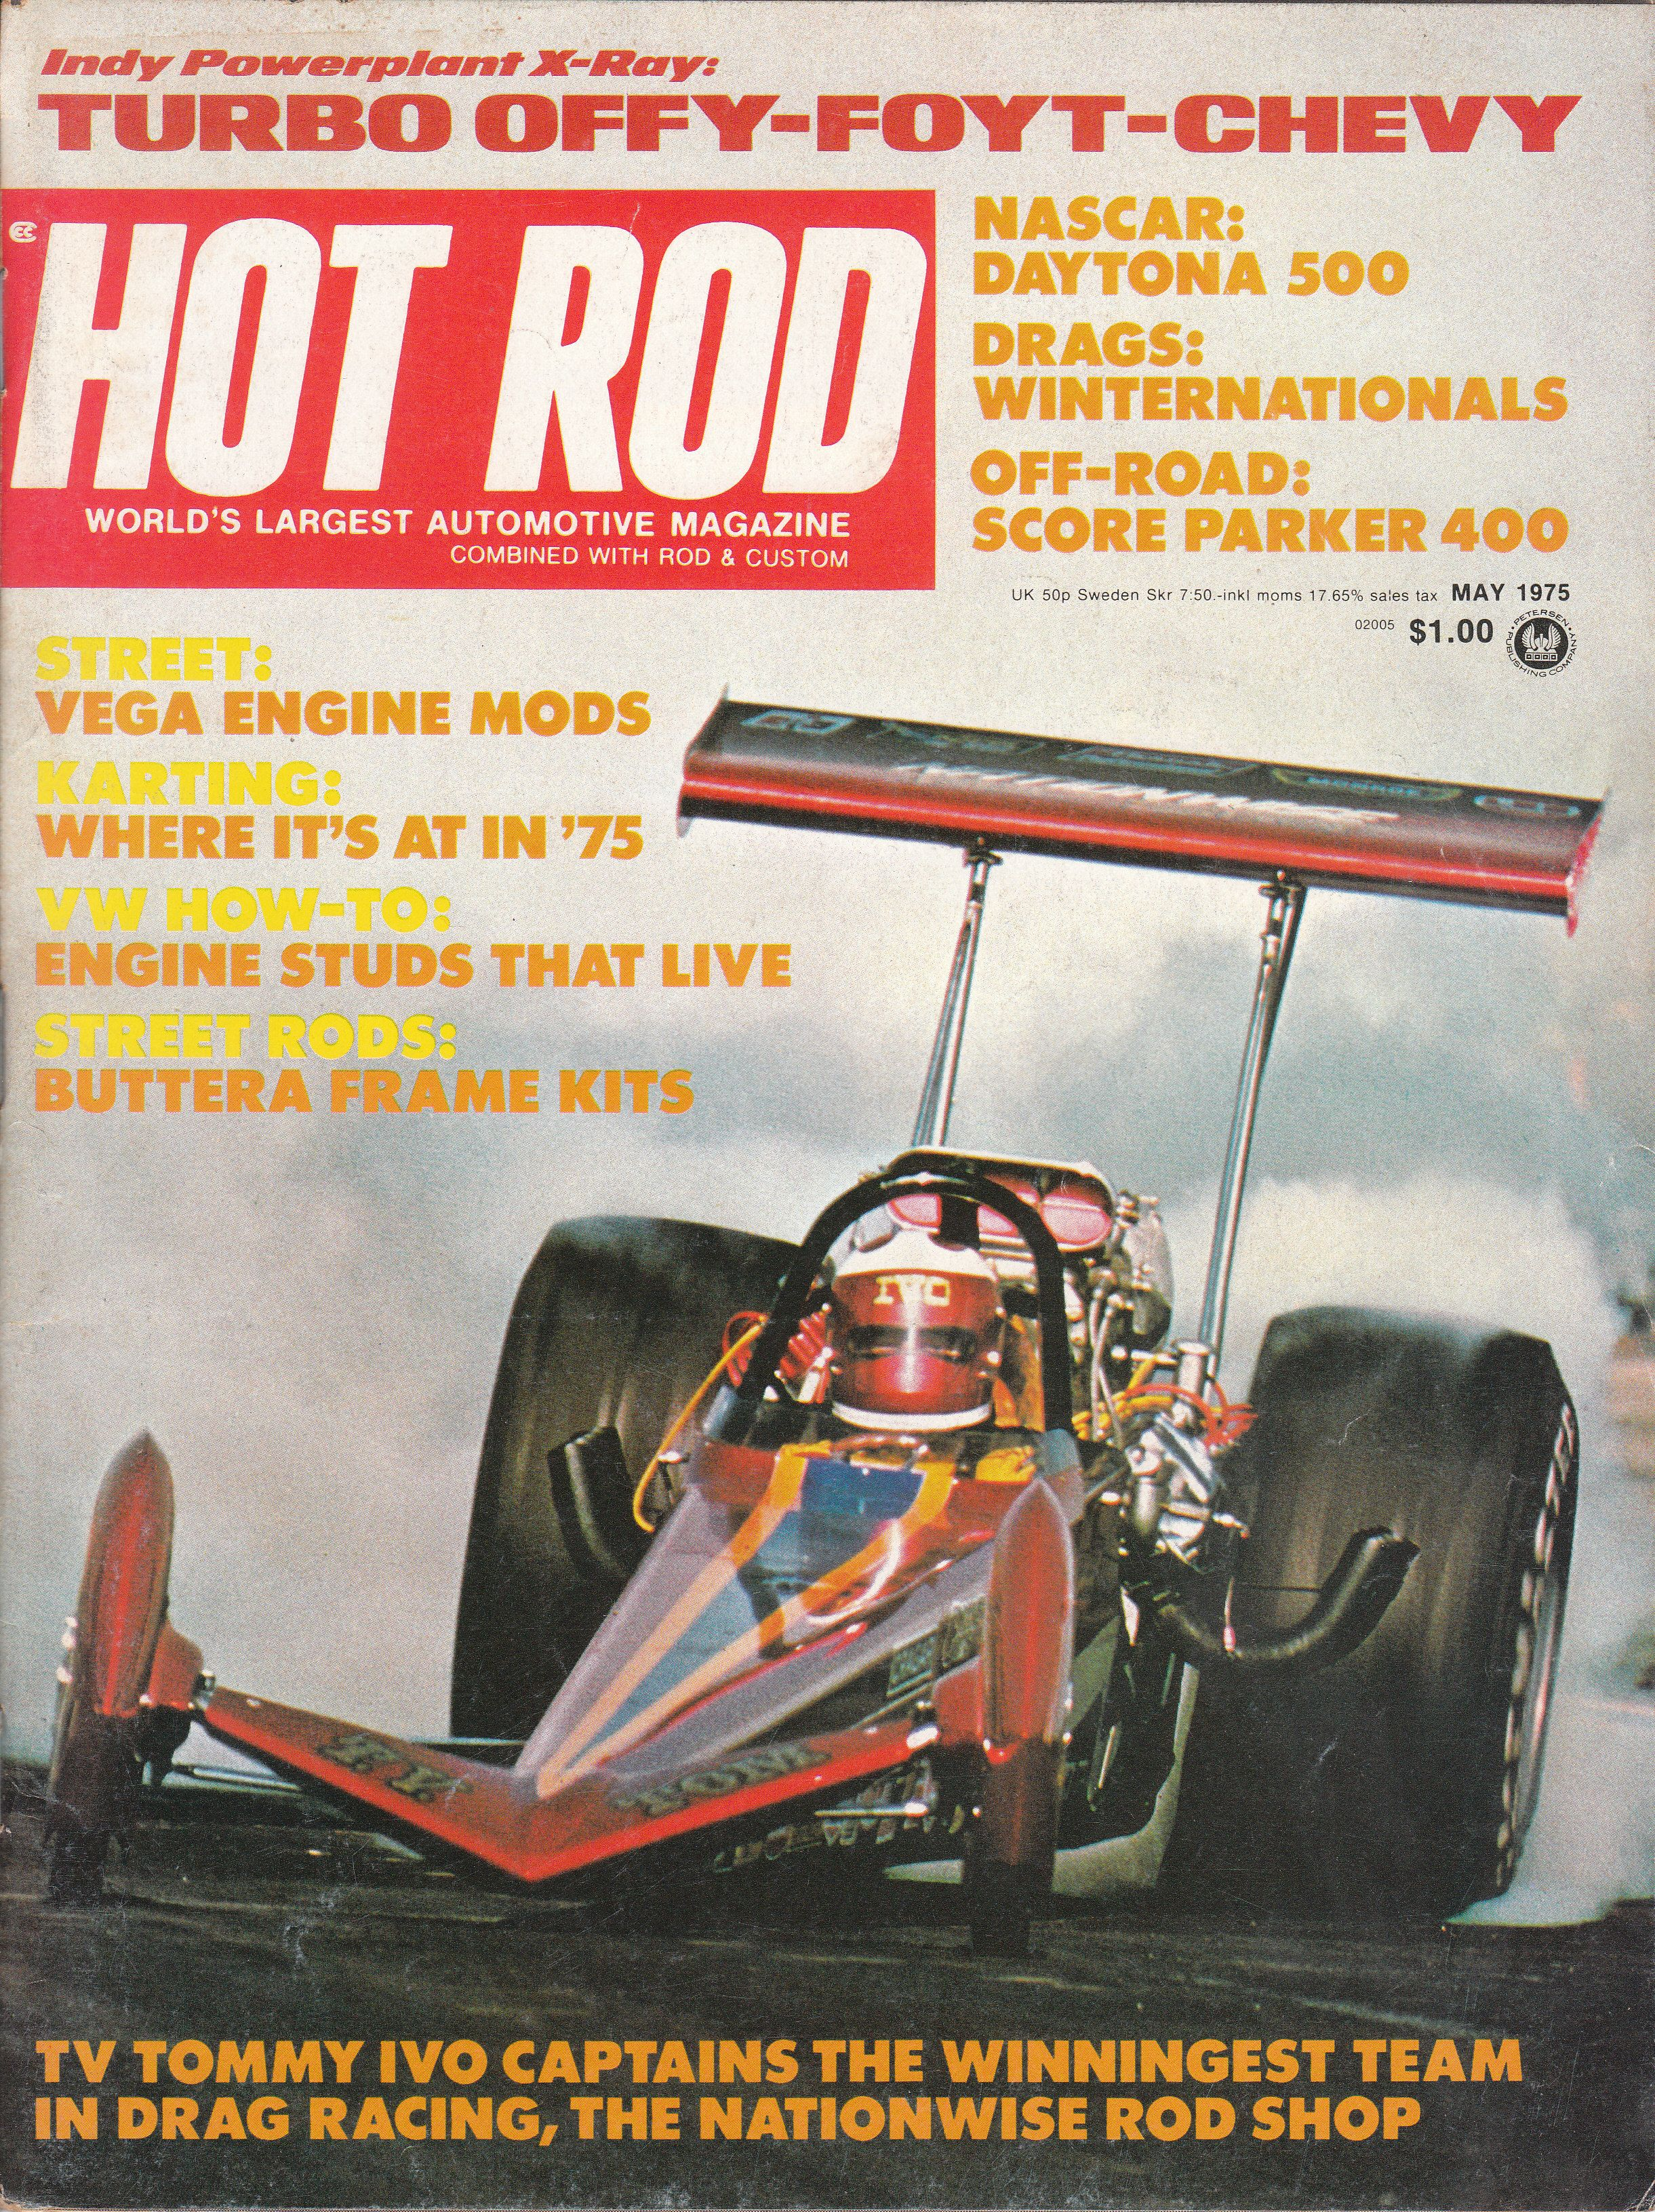 Hot Rod Volume 28 Issue 5 May 1975 1970 S Car And Truck